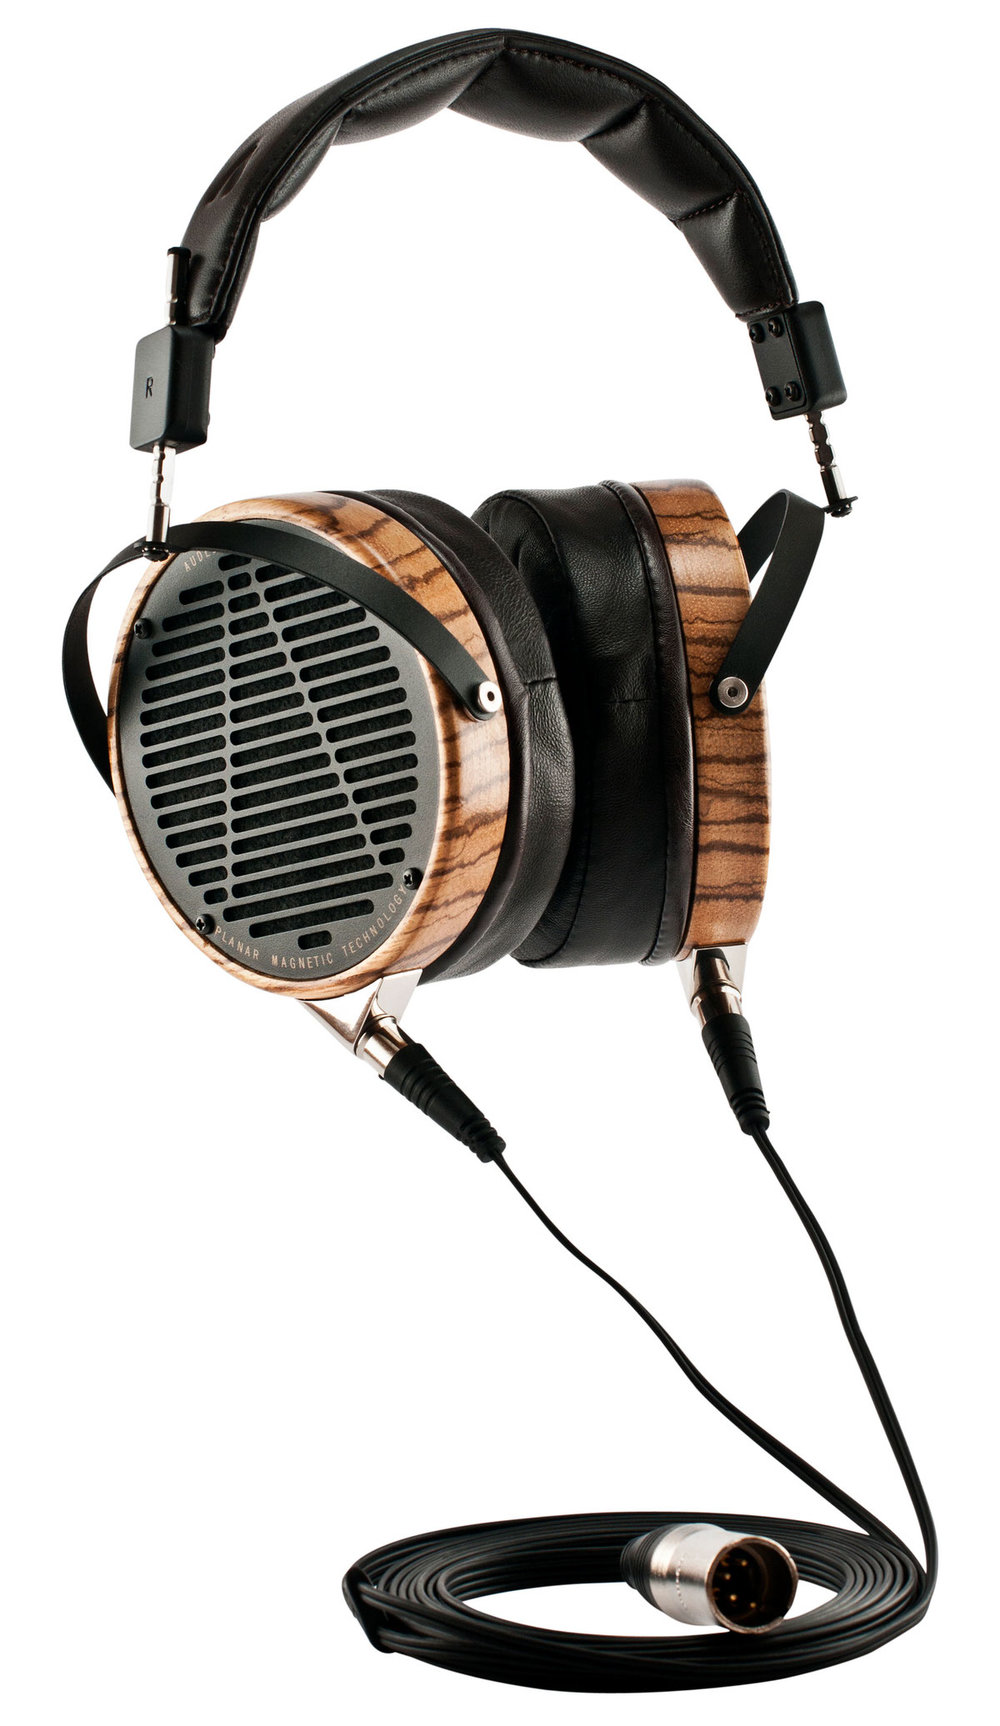 Casque audio Audeze LCD-2